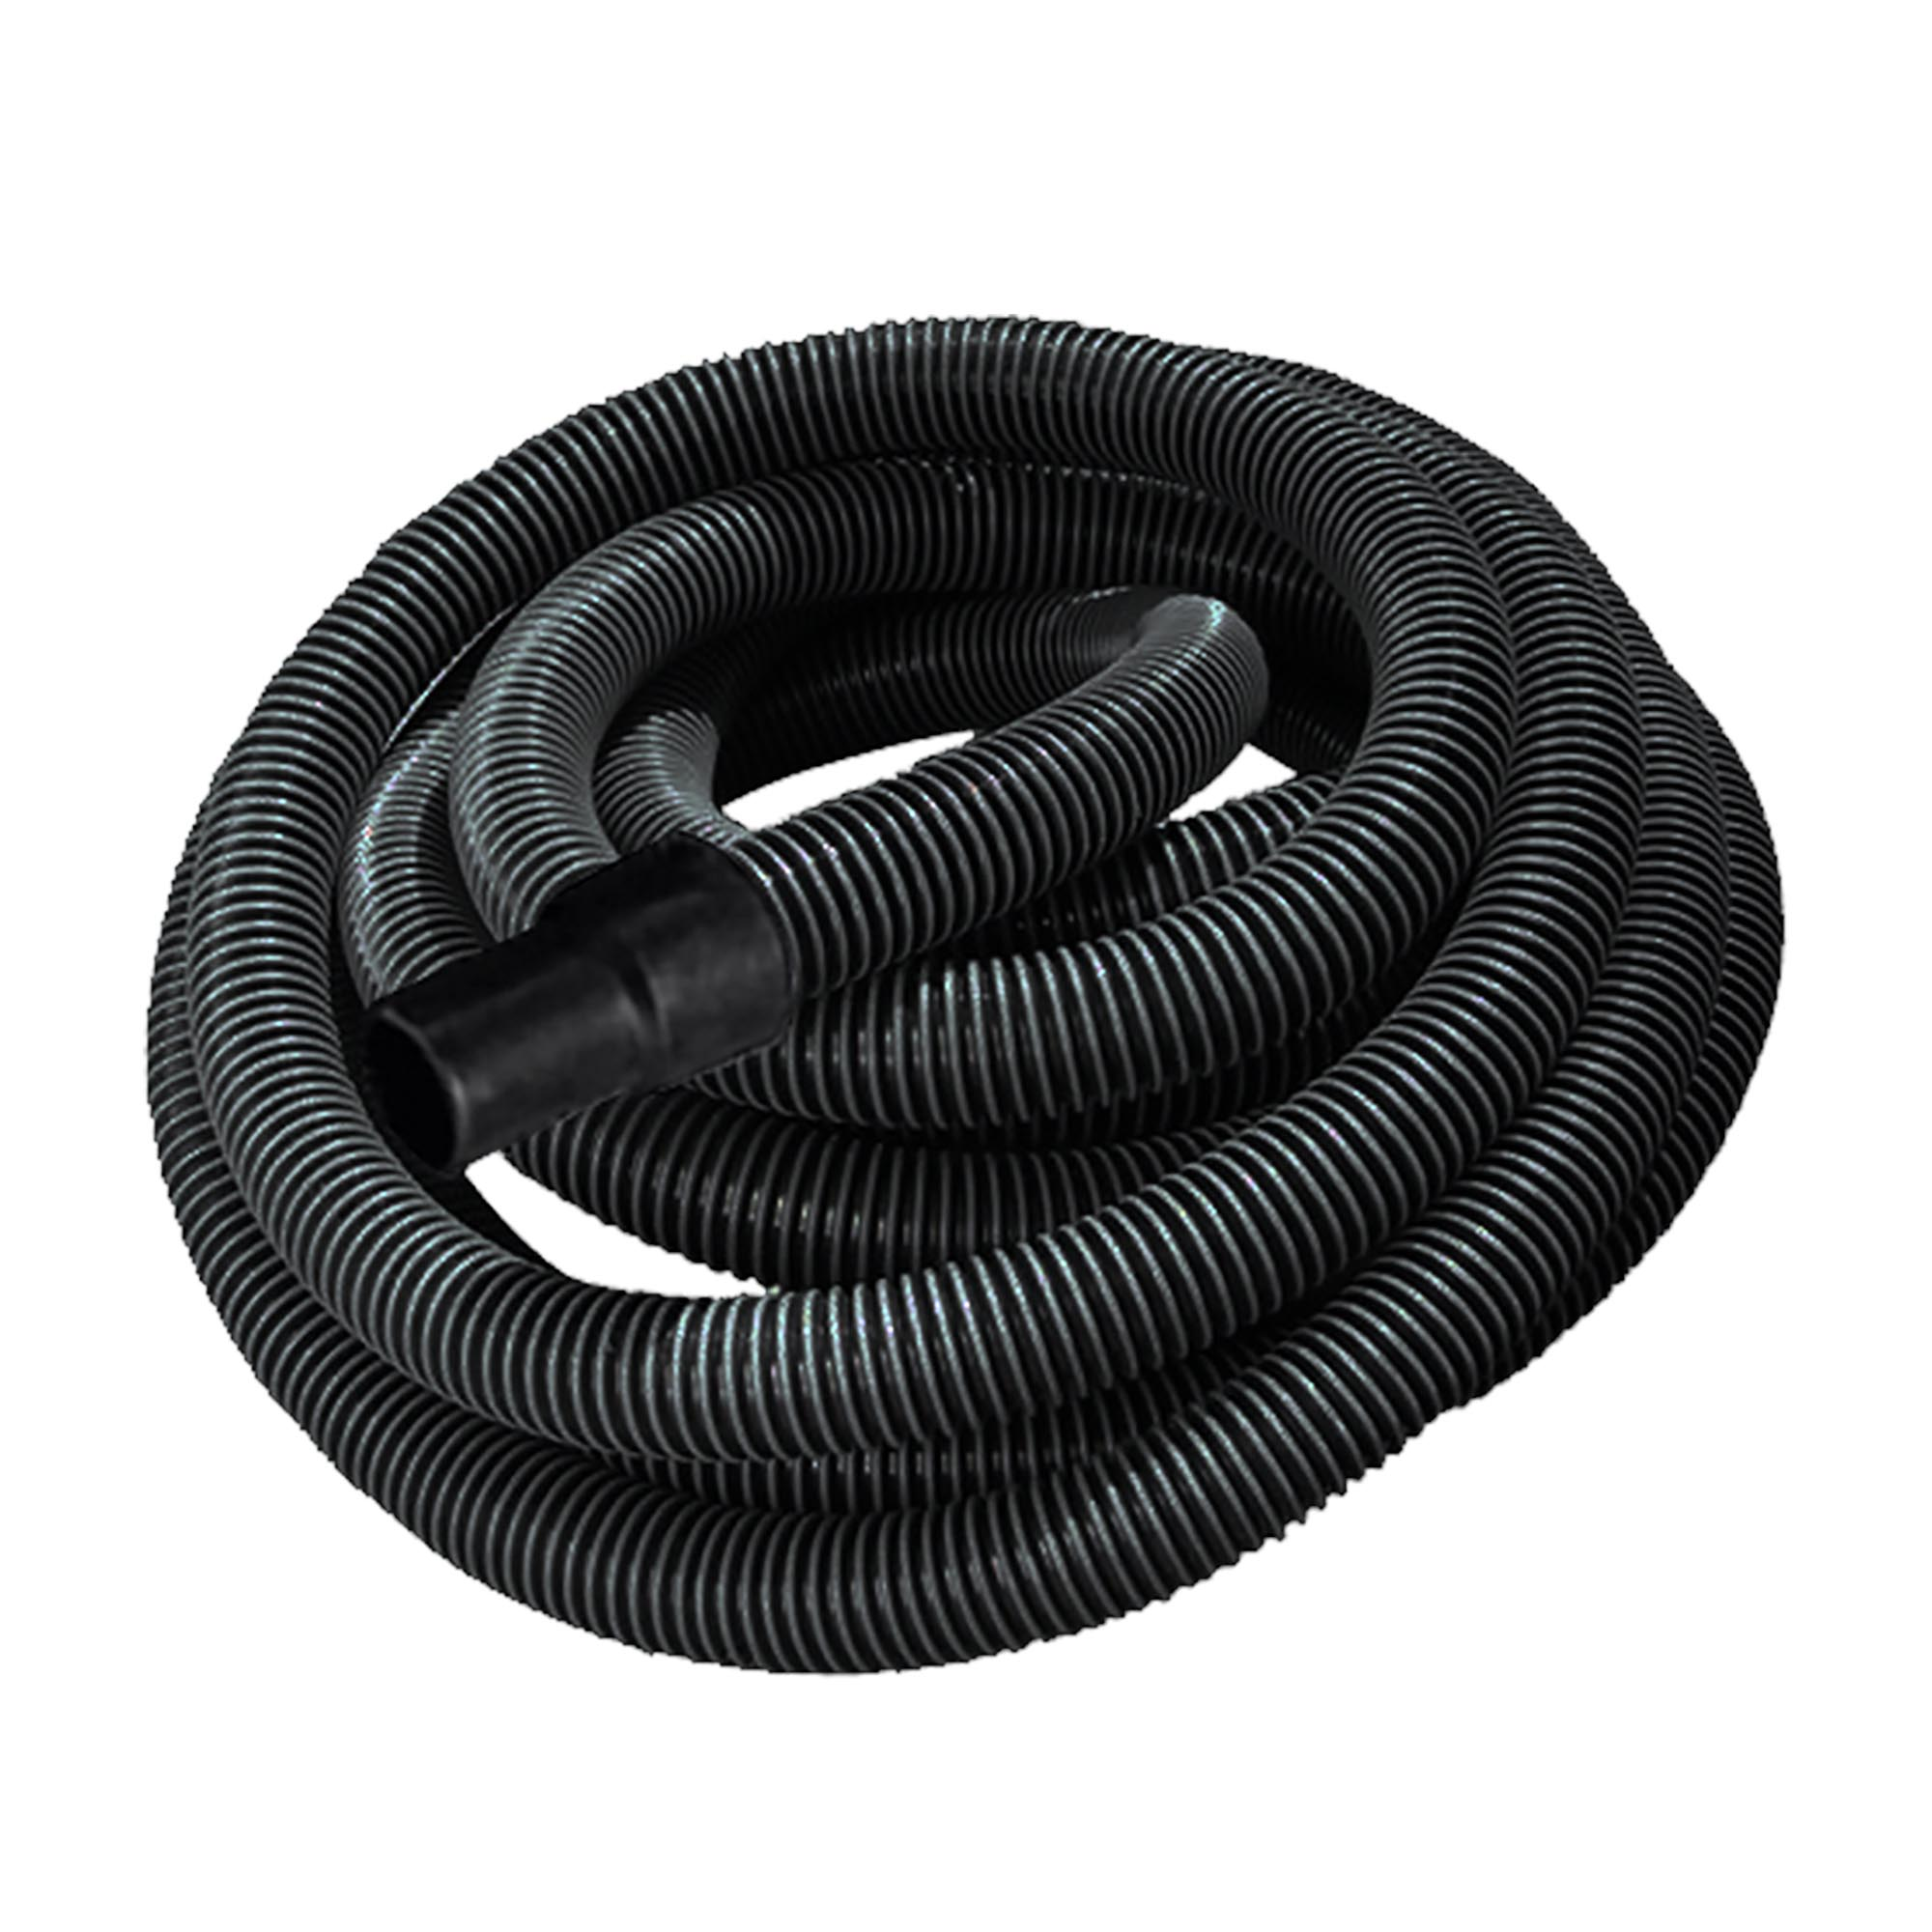 Model 6569-20 20' 1-1/2 Flexible Vacuum Hose